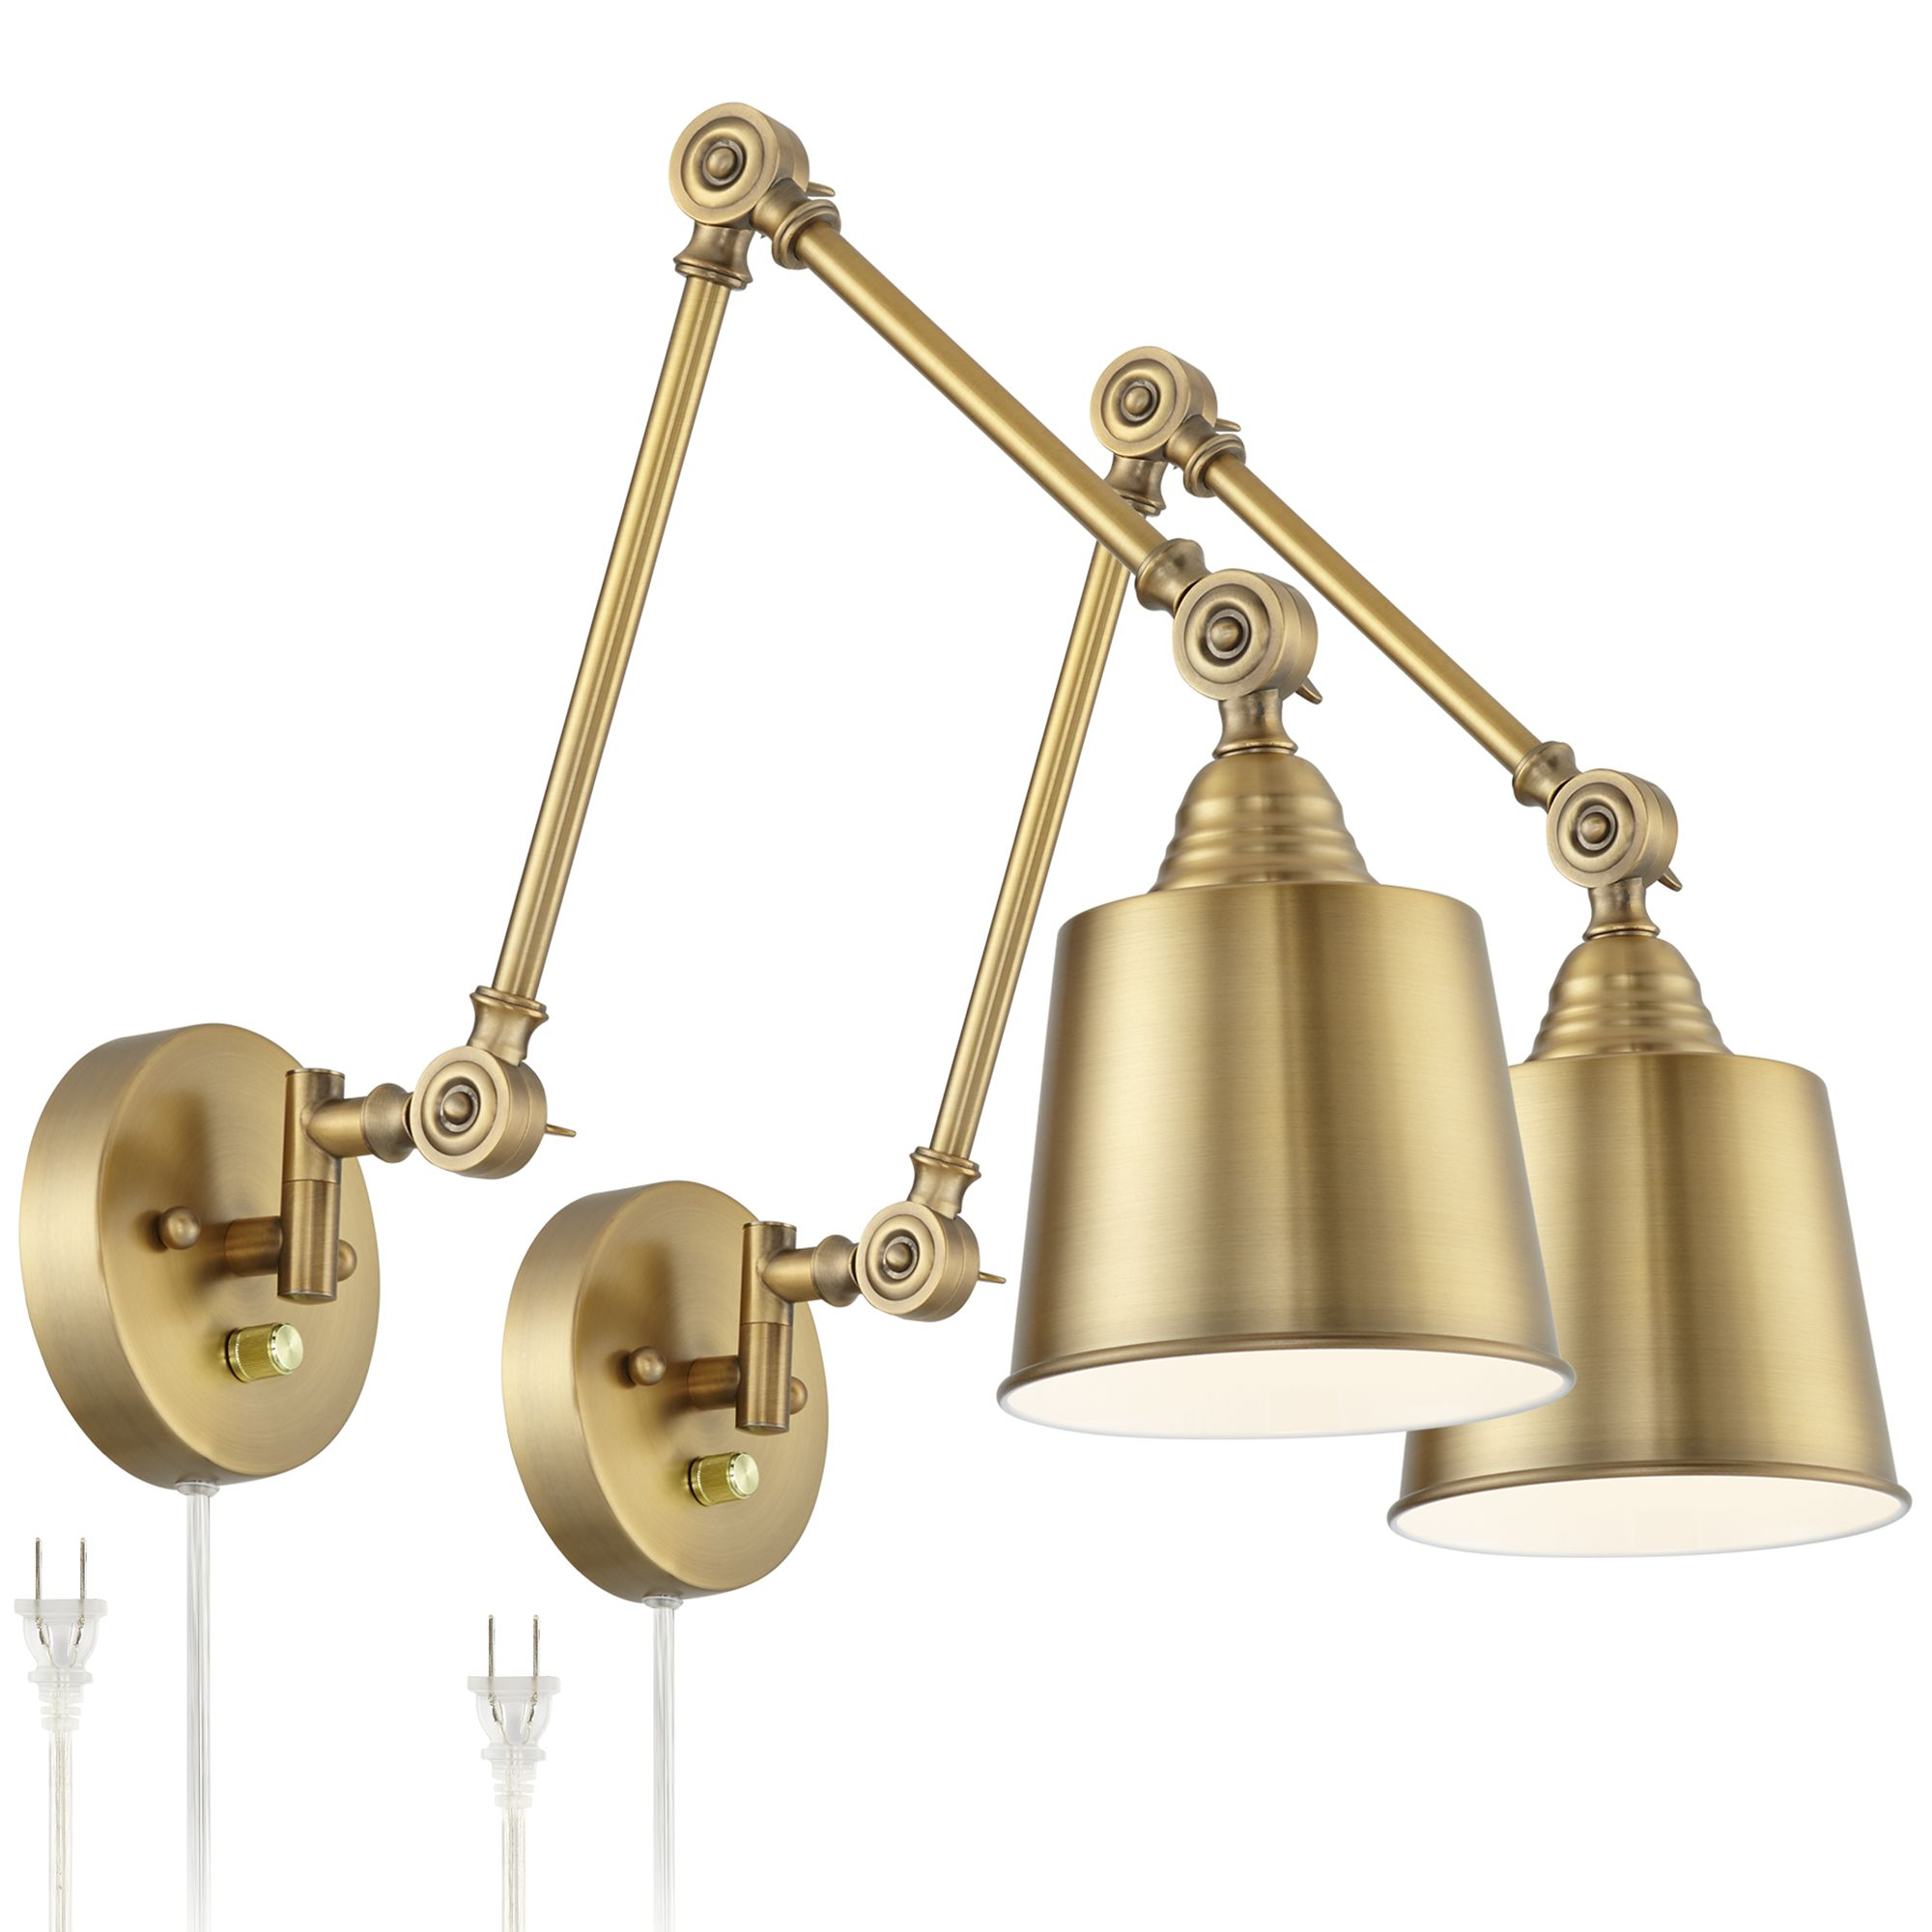 Set Of 2 Mendes Antique Brass Down Light Plug In Wall Lamps